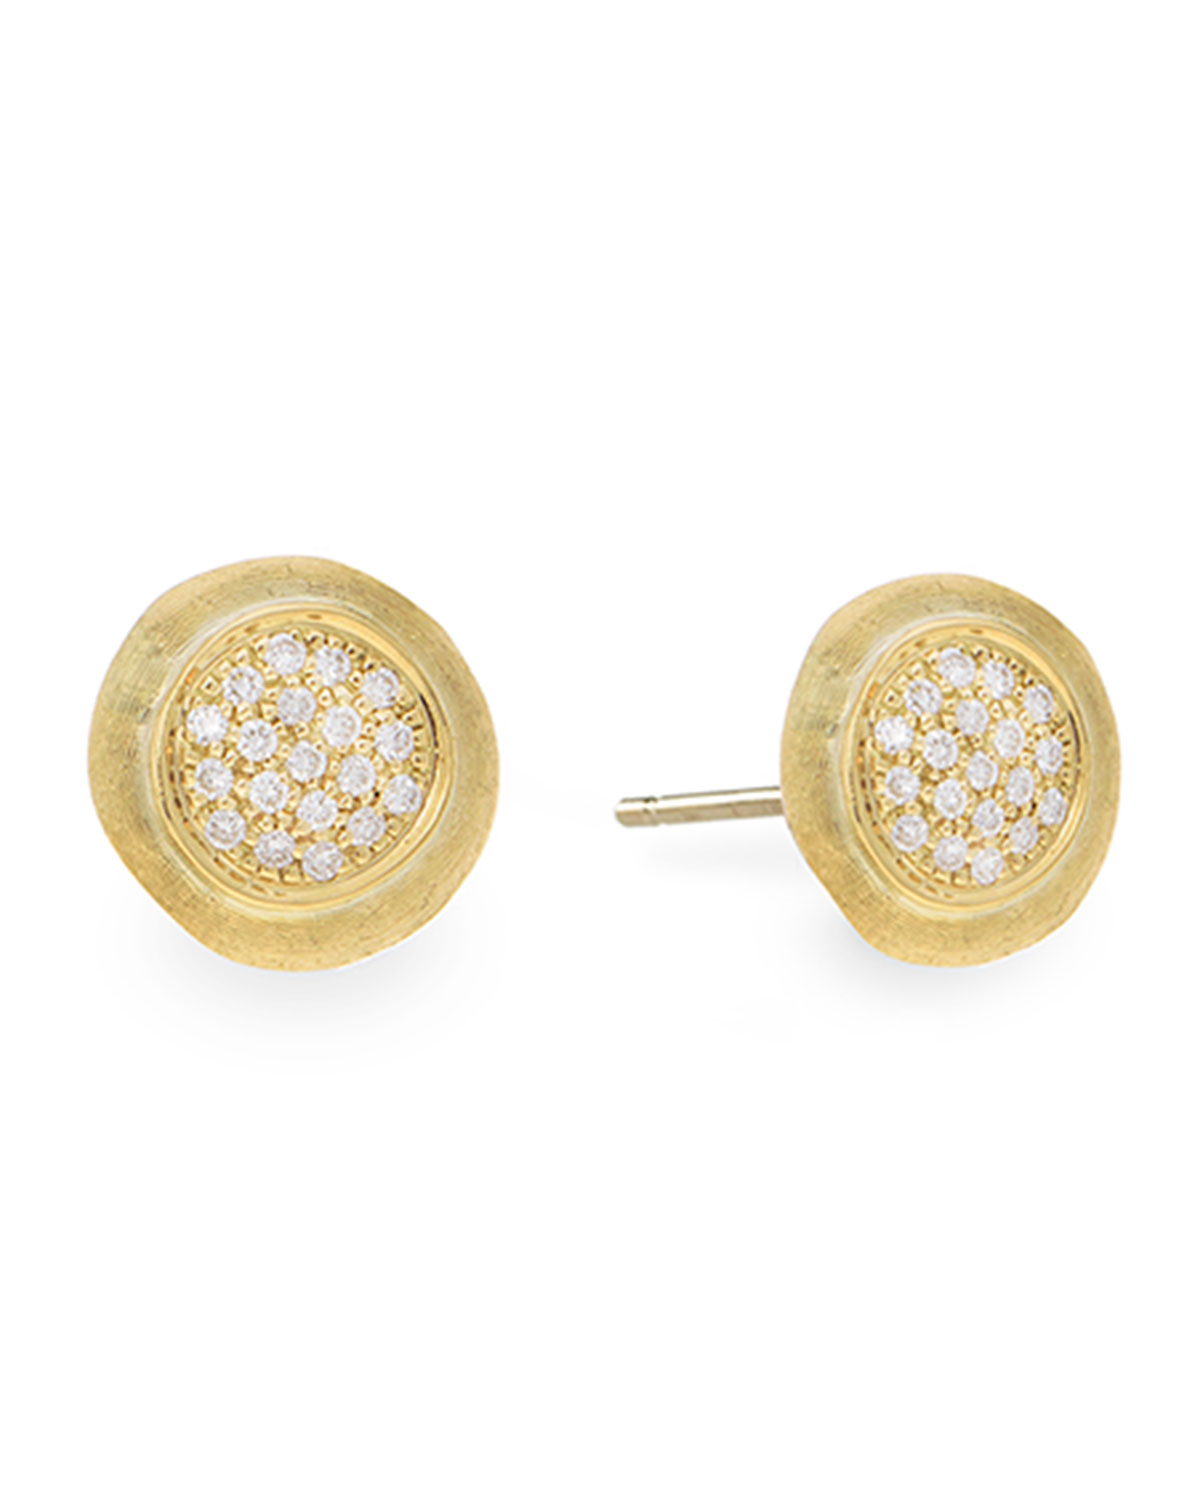 Jaipur 18k Yellow Gold Stud Earrings W Pave Diamonds